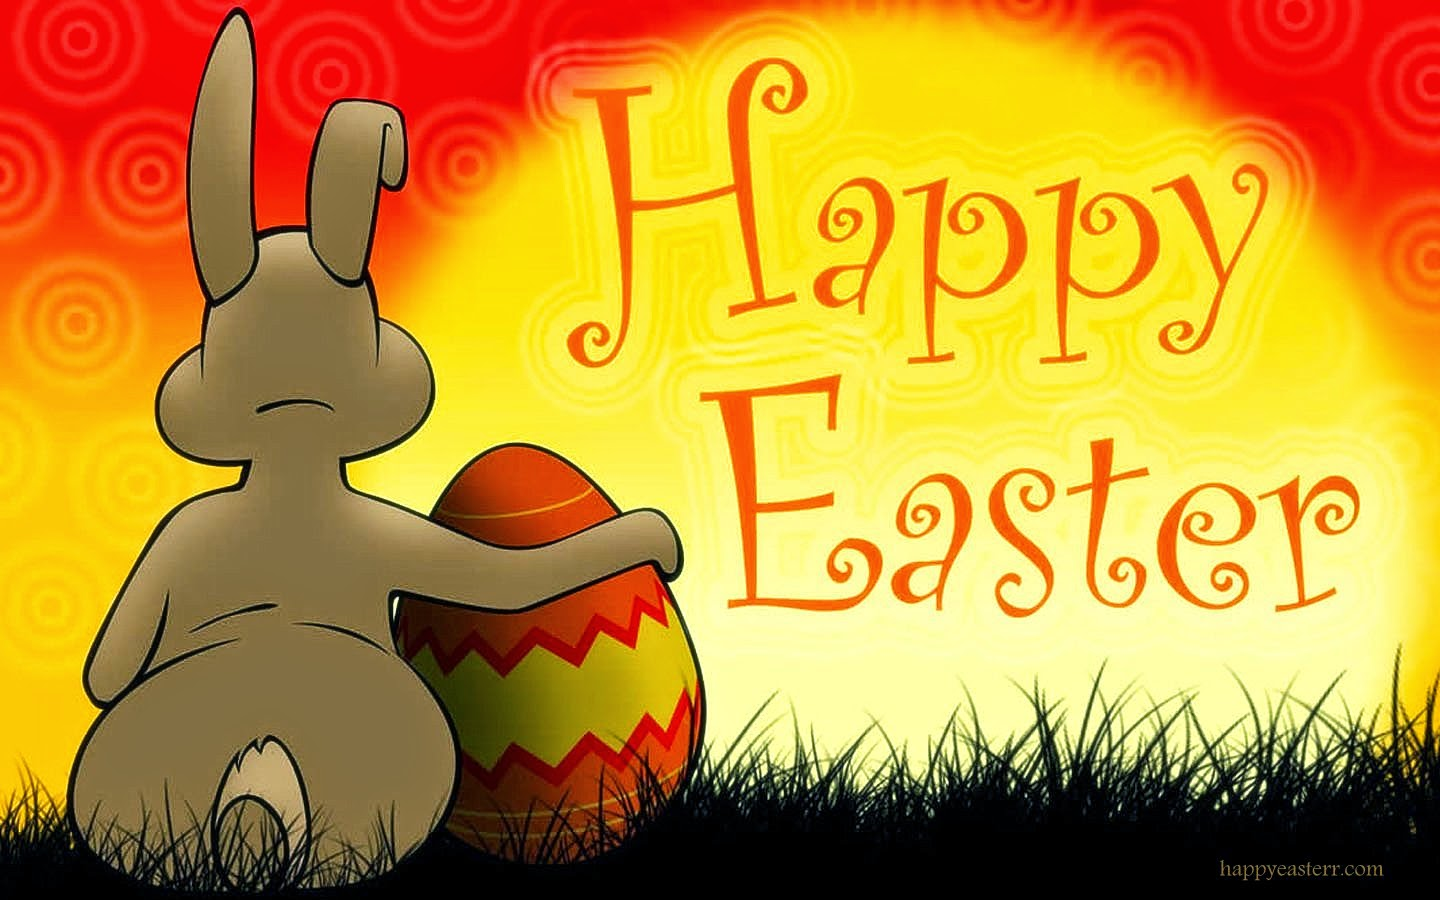 HD-Happy-Easter-Images-for-greeting-Cards